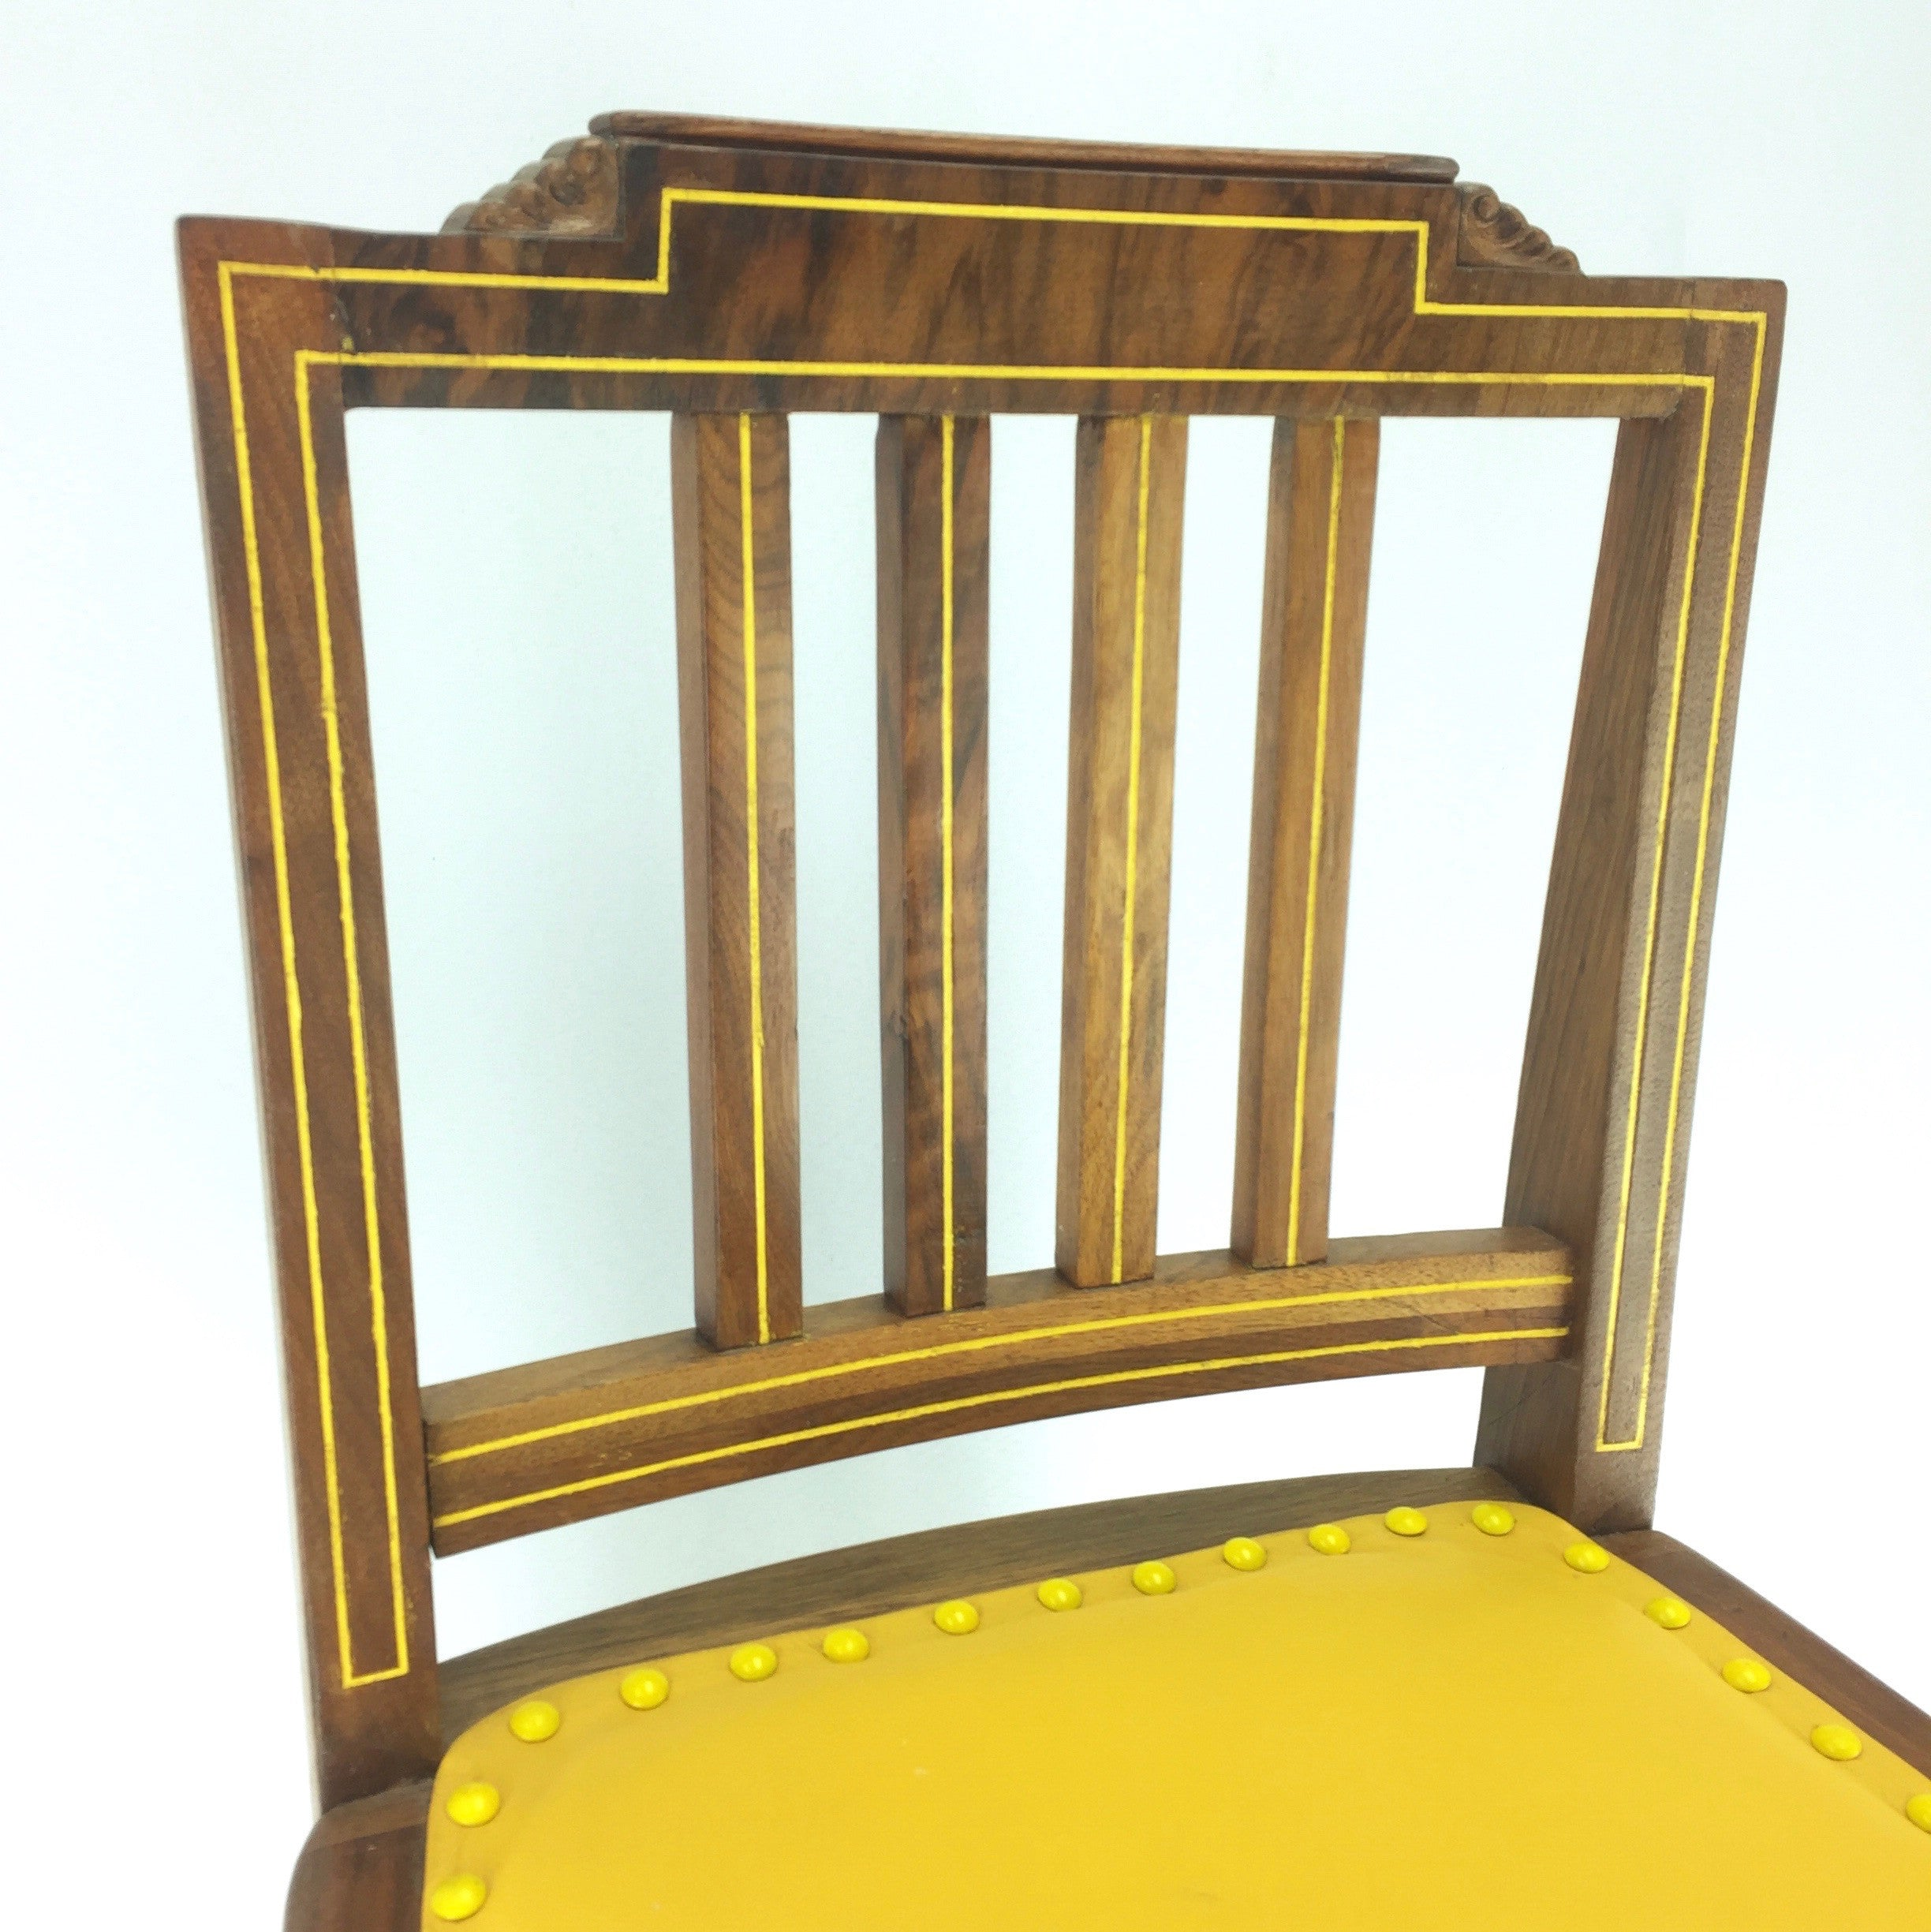 Bespoke Contemporary Wooden Chair